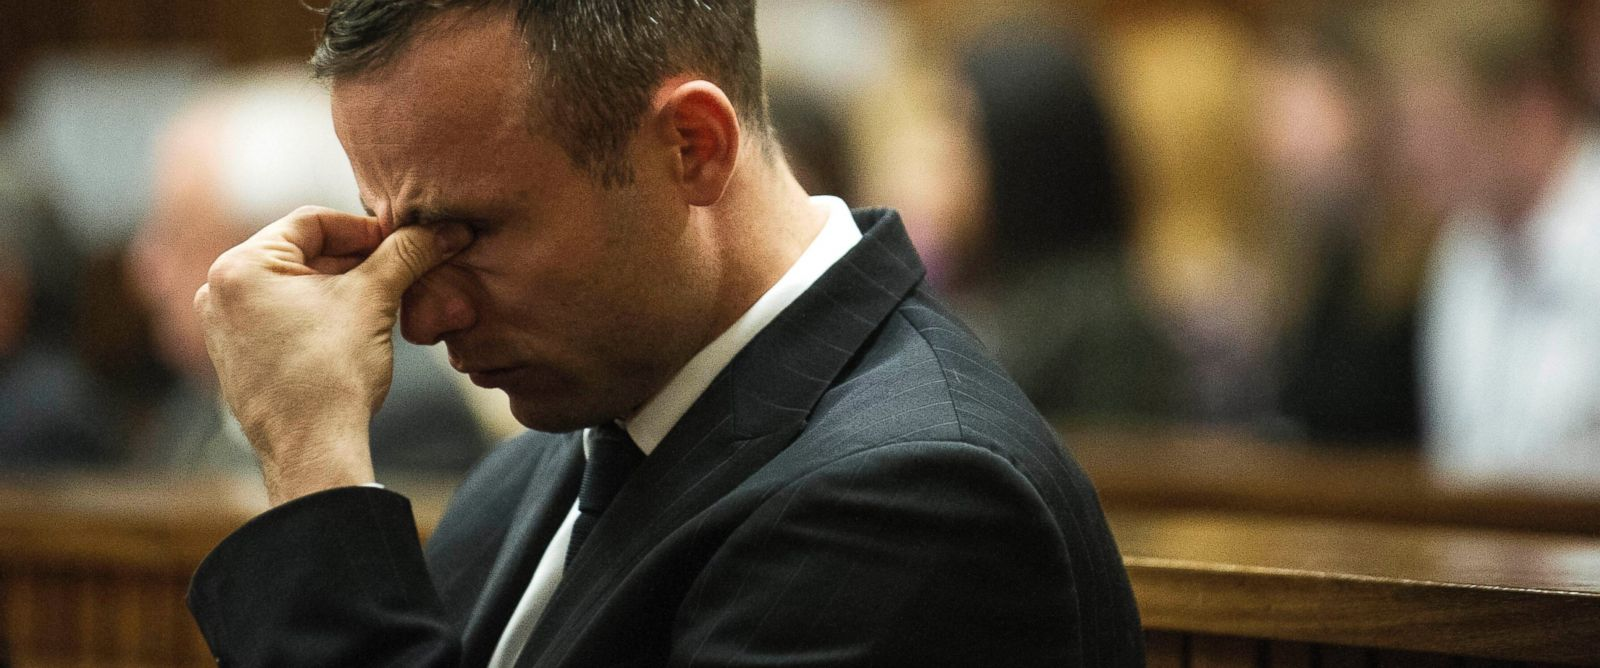 PHOTO: Oscar Pistorius reacts as he listens to forensic evidence being given in court in Pretoria, South Africa, April 16, 2014.